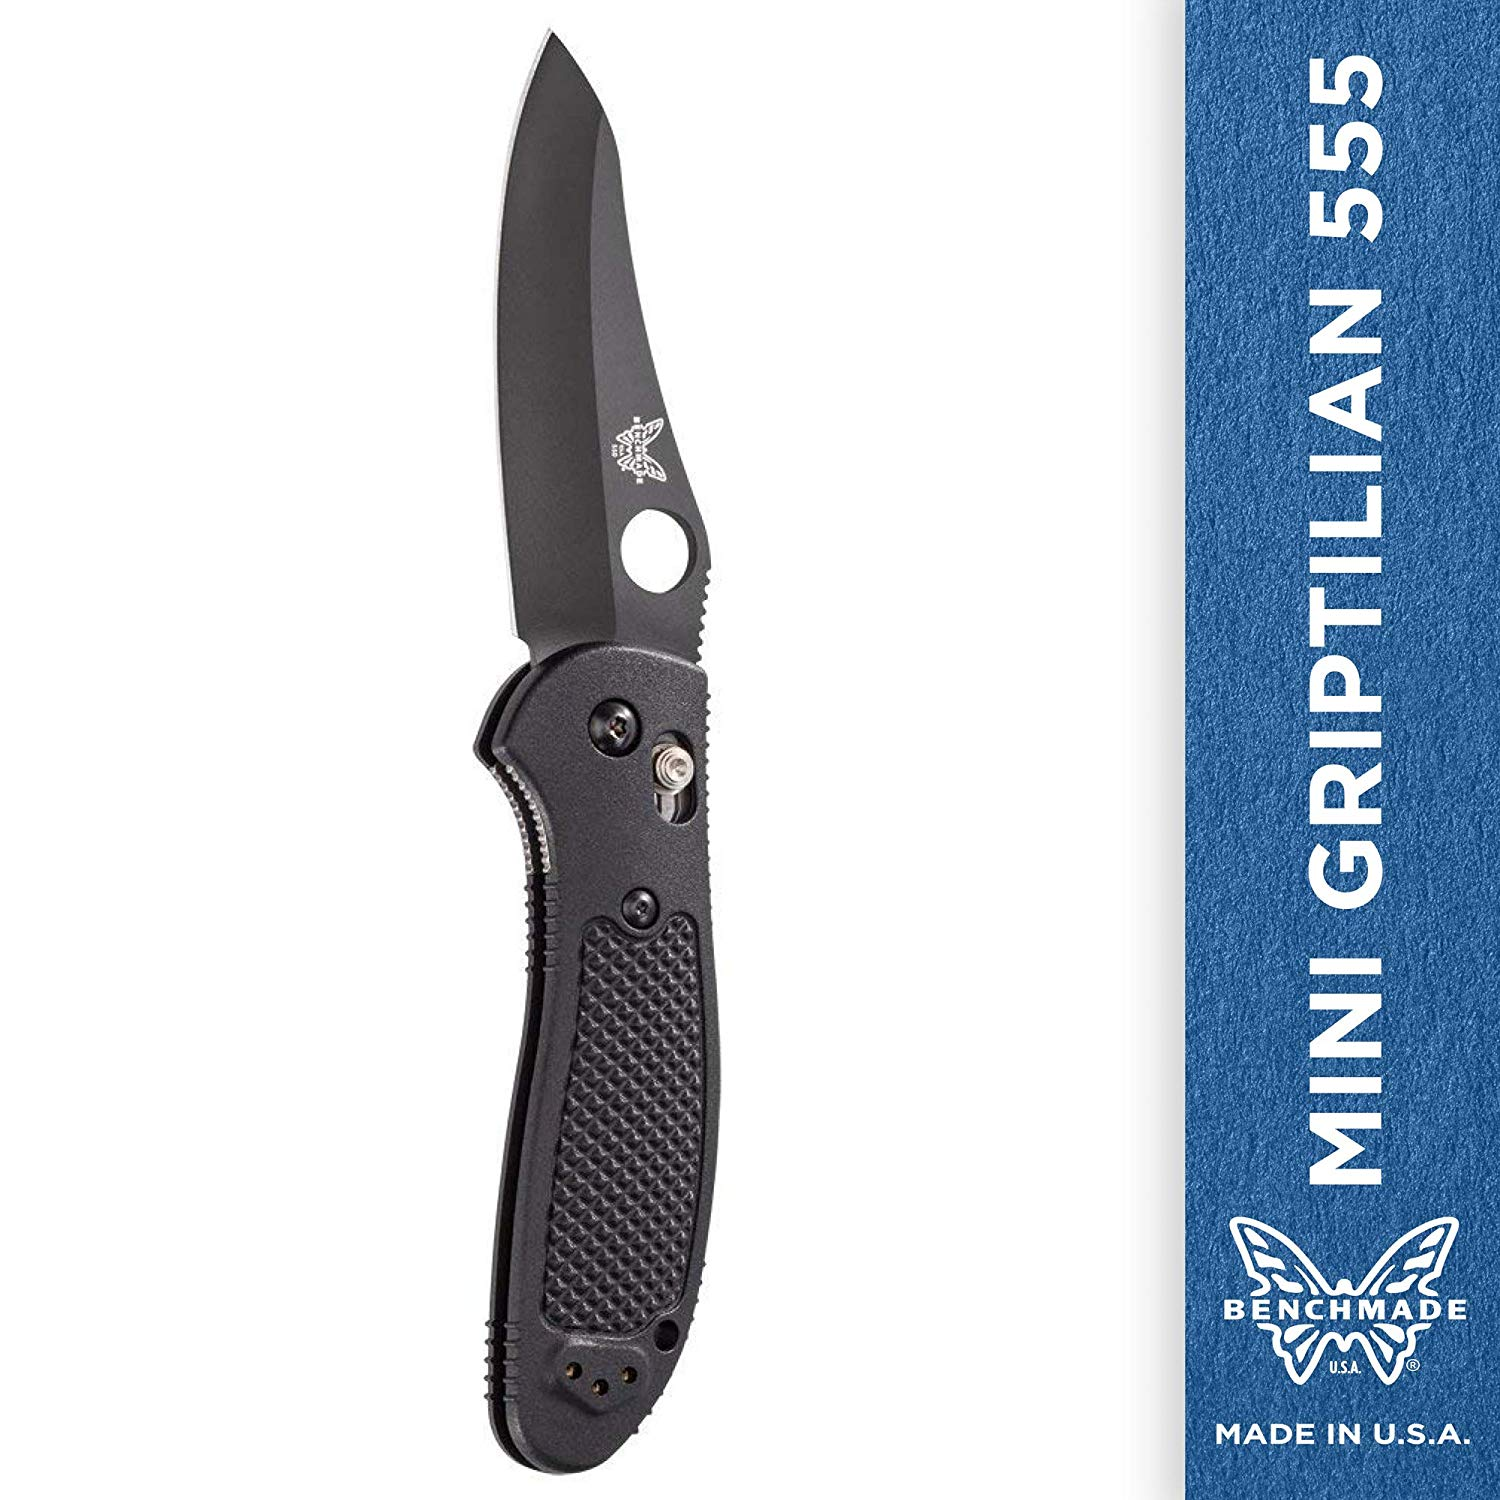 Benchmade - Mini Griptilian 555 Knife with CPM-S30V Steel, Sheepsfoot Blade, Plain Edge